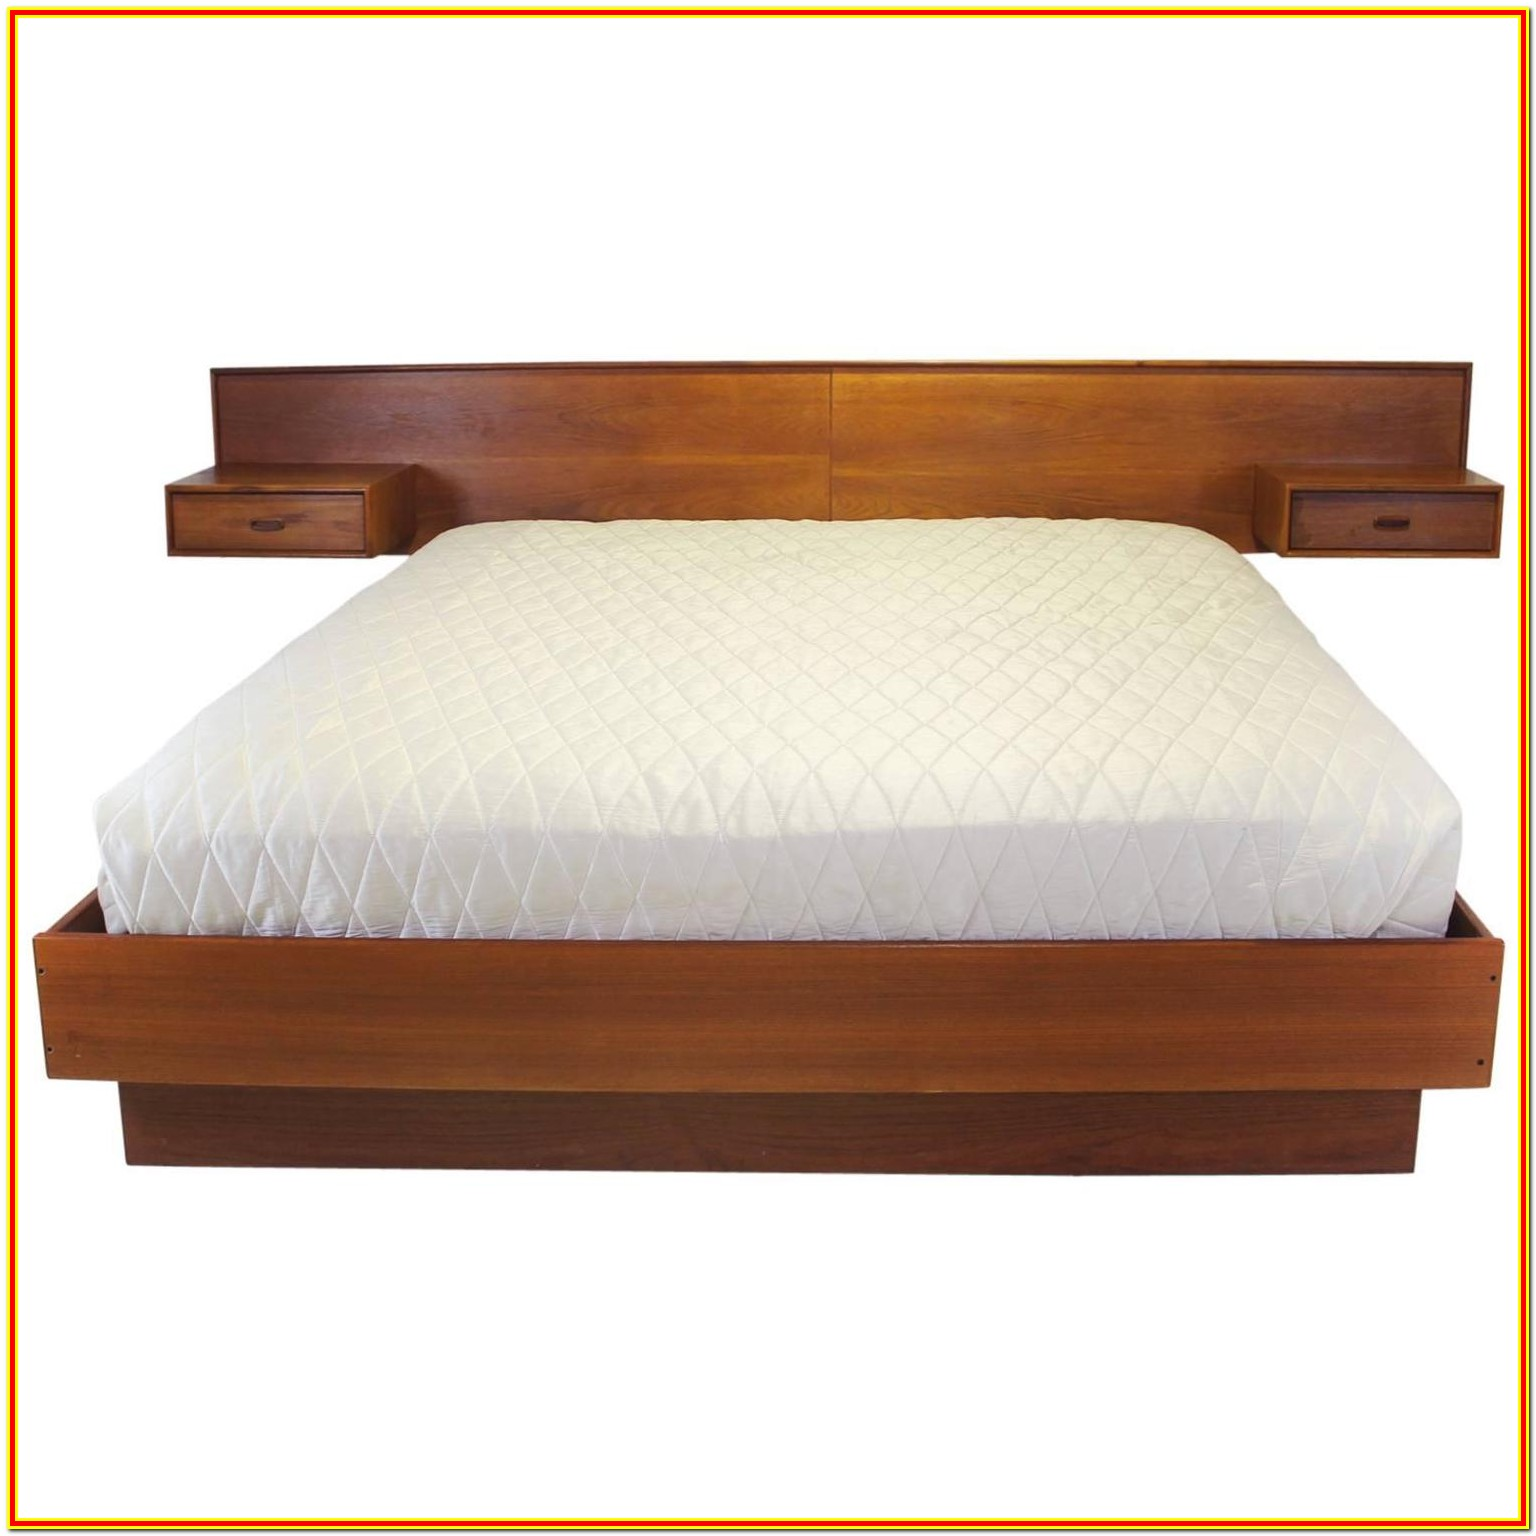 Modern Bed With Attached Nightstands